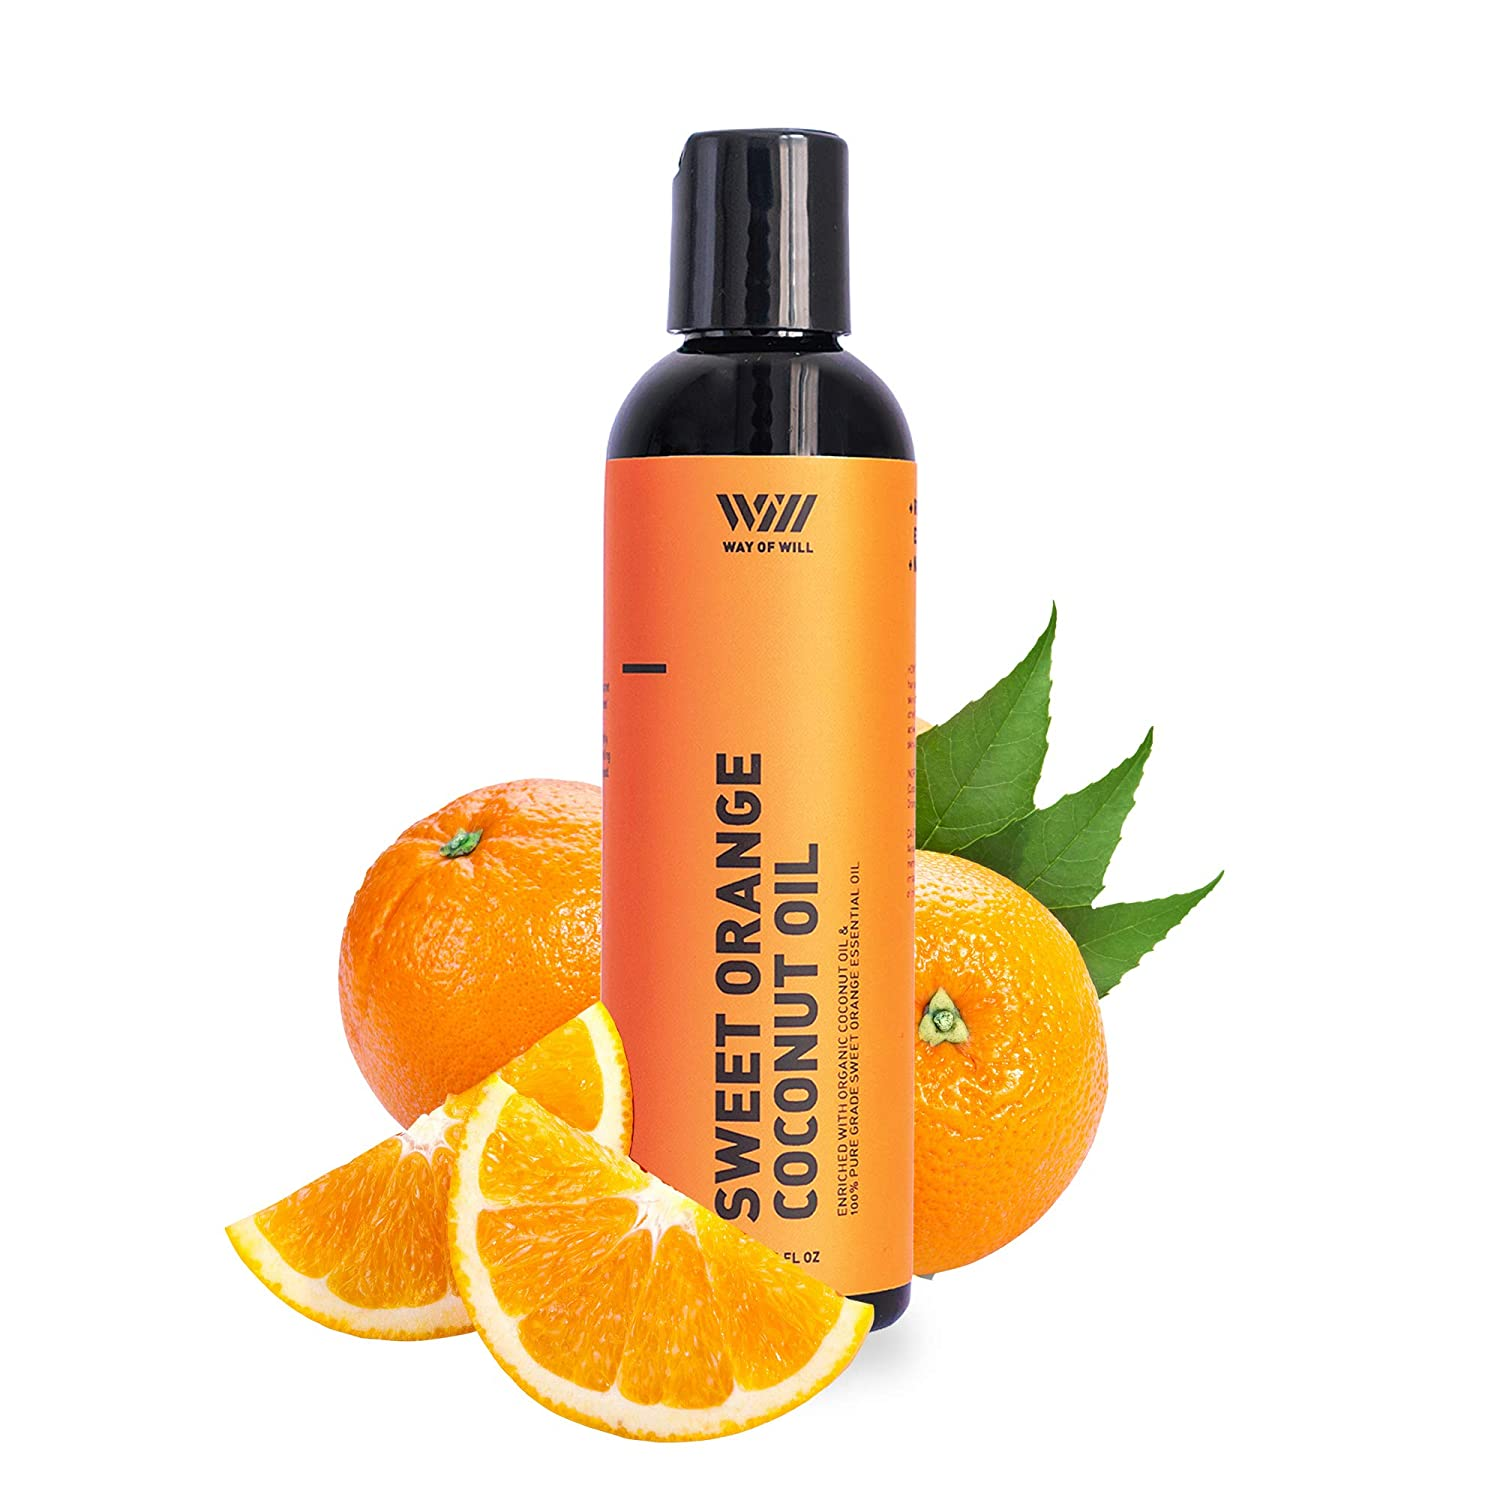 Coconut Oil for Skin and Hair, Extra Virgin Coconut Oil with Mood-Boosting Sweet Orange Essential Oil, Moisturizes Skin and Conditions Hair, 120 mL - Way of Will